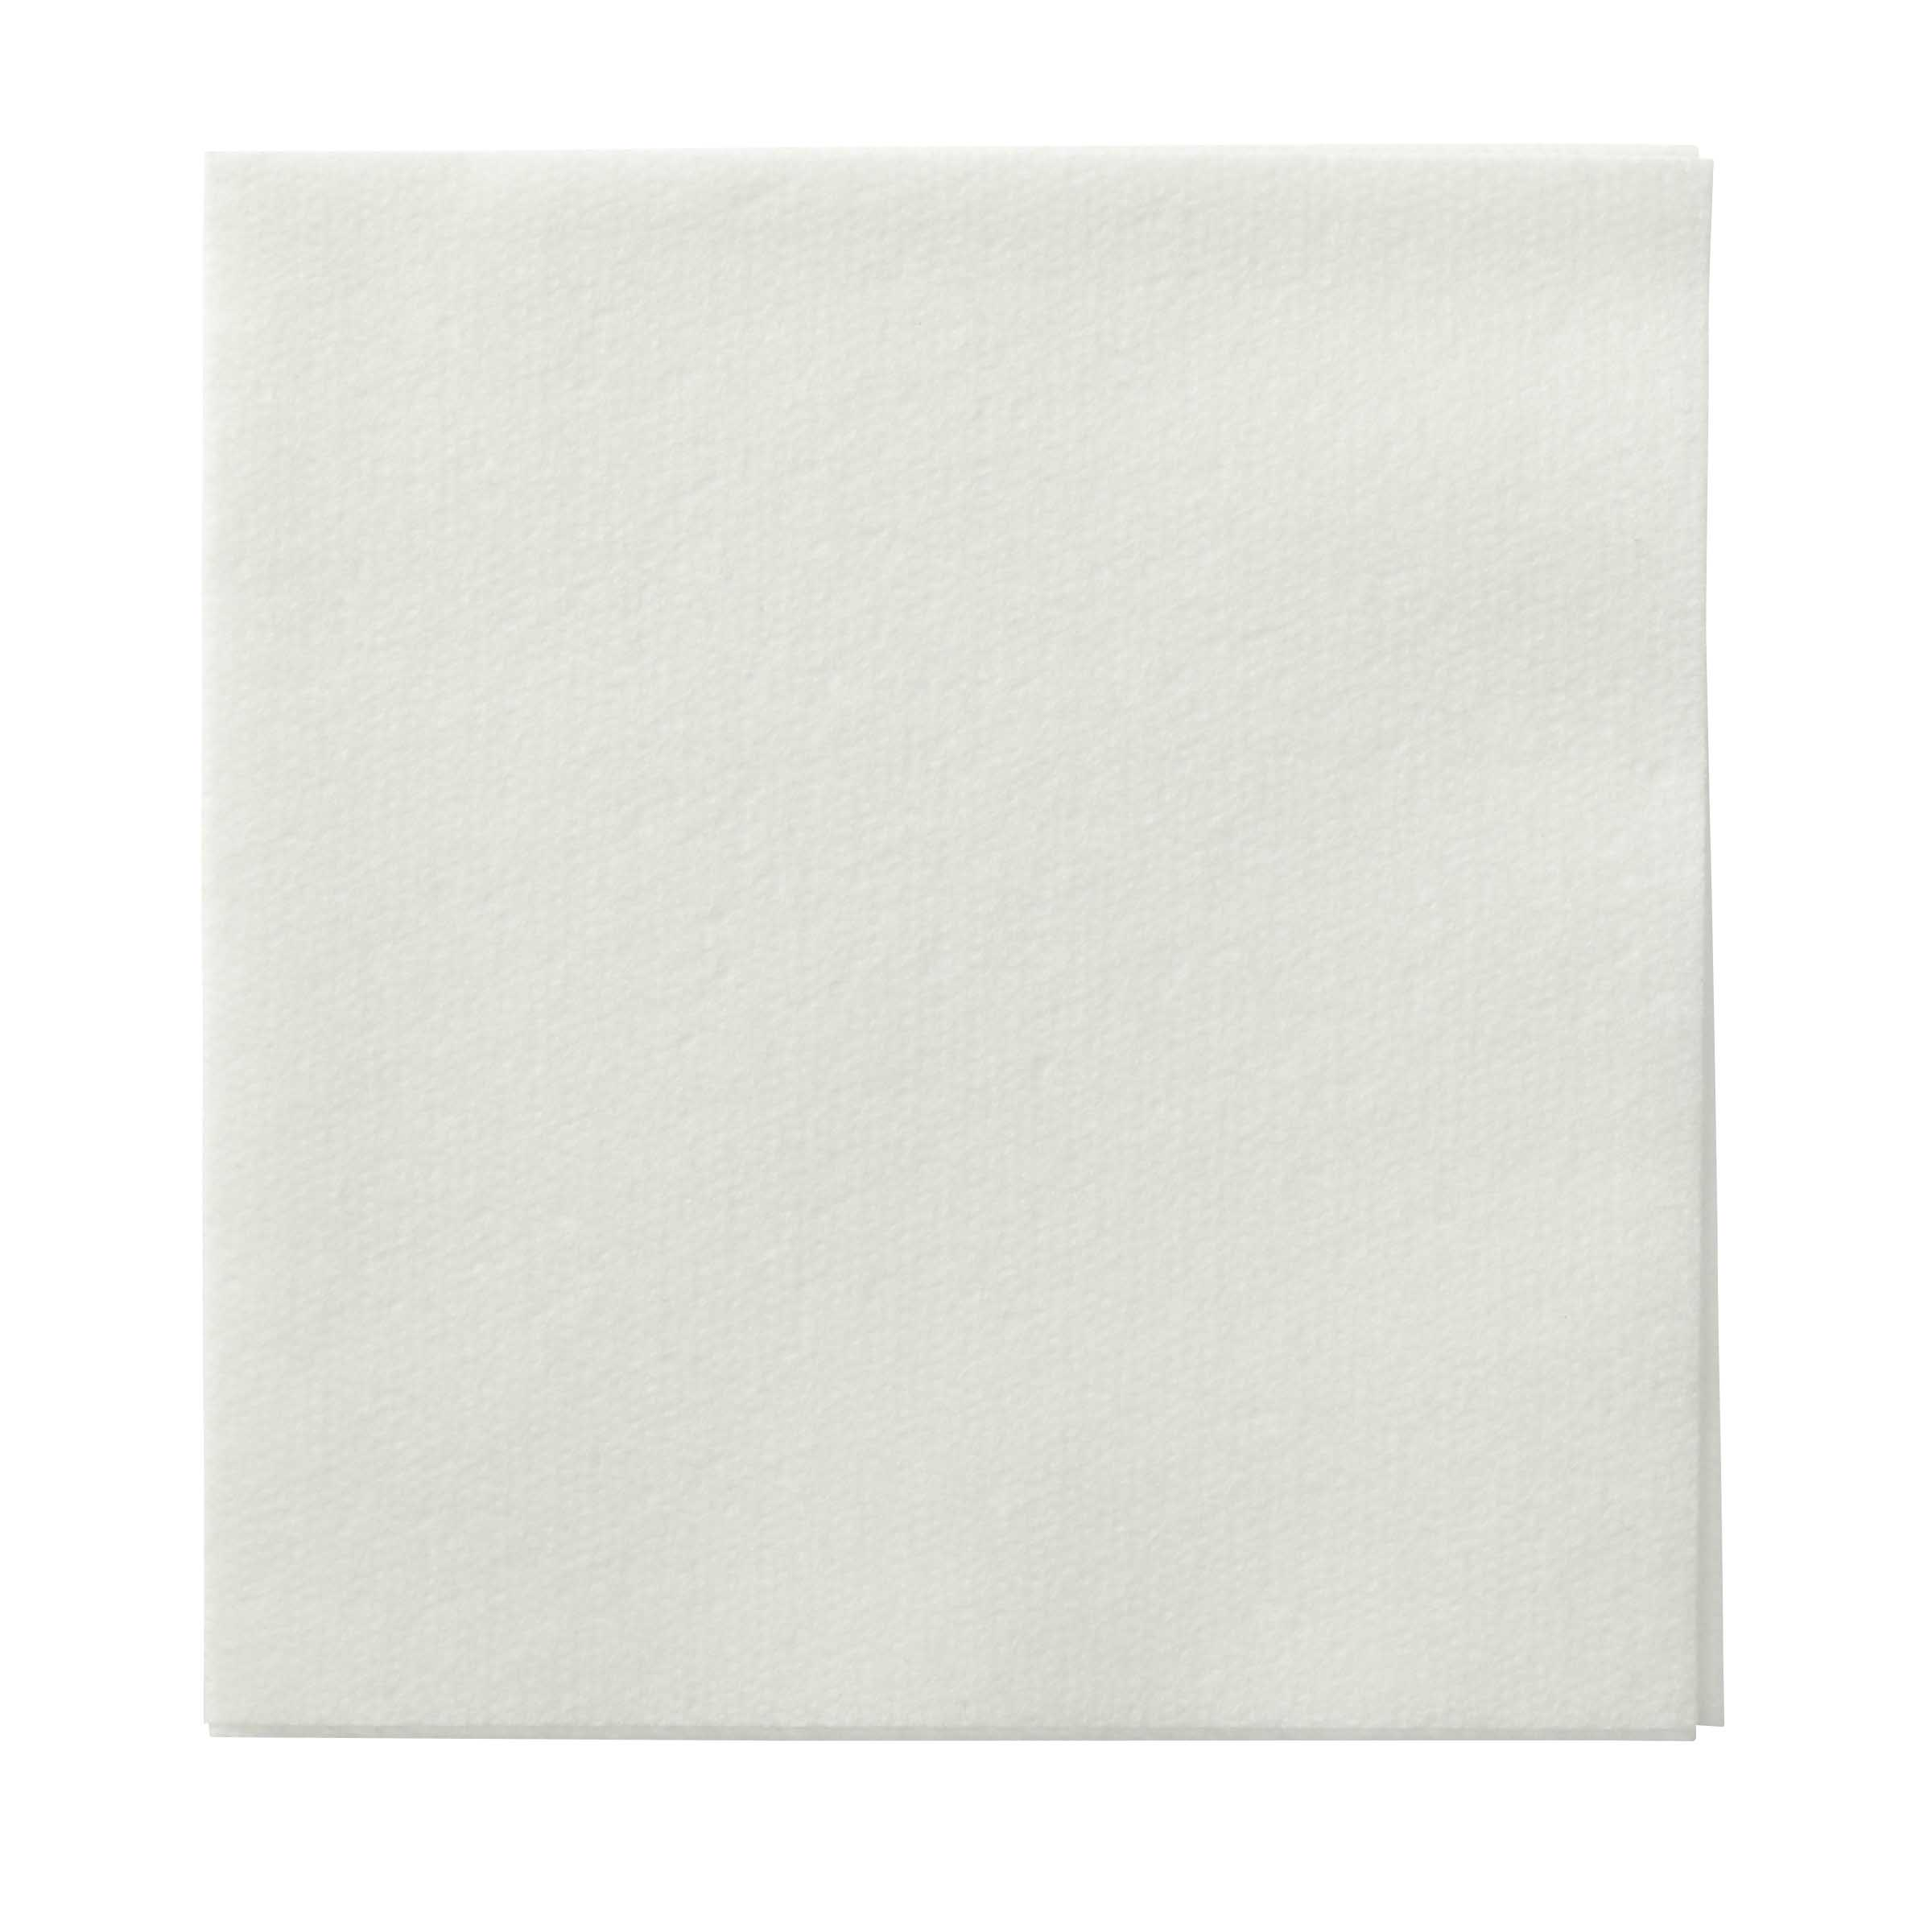 "Hoffmaster White 10""x10"" 1/4 Fold Un Embossed Linen Like Beverage Napkin 046115"